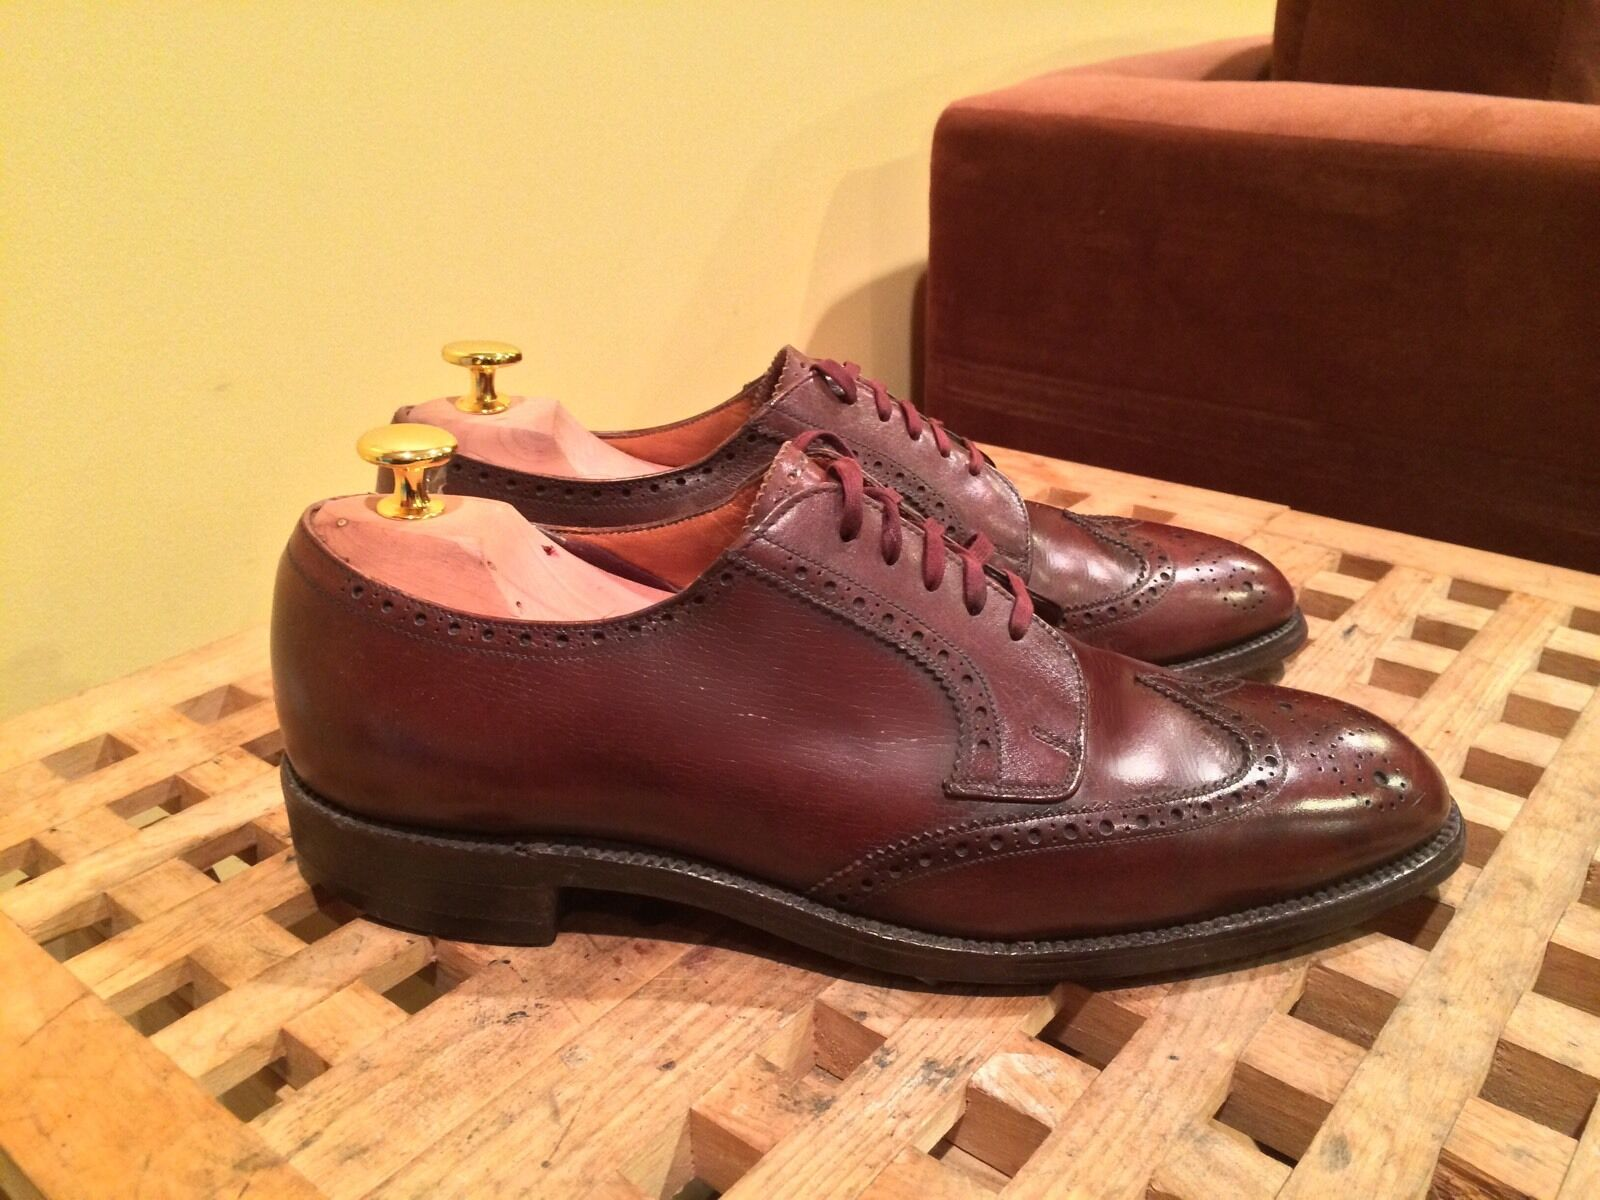 Church's For For For Brooks Brothers braun Shortwing Half Brogue schuhe Wingtip 7.5 C ae2edc